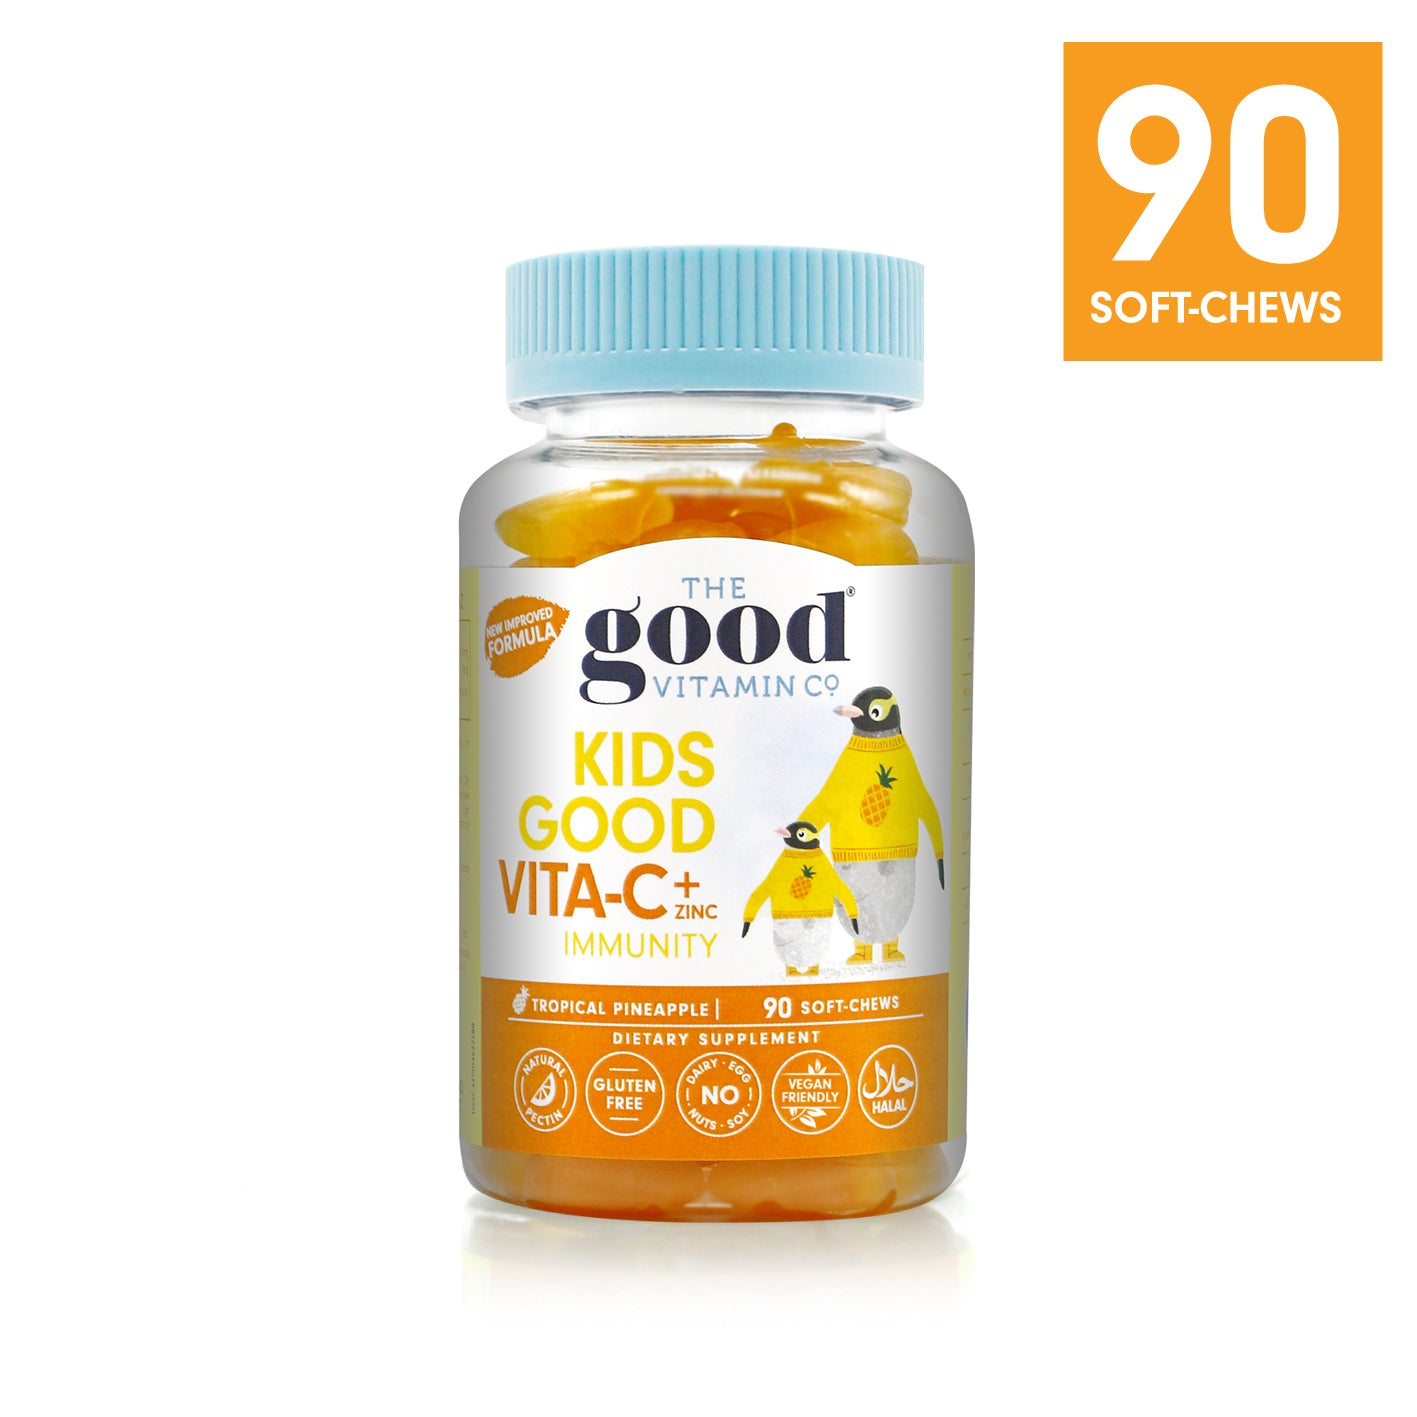 KIDS GOOD VITA-C+ZINC Product Info Link